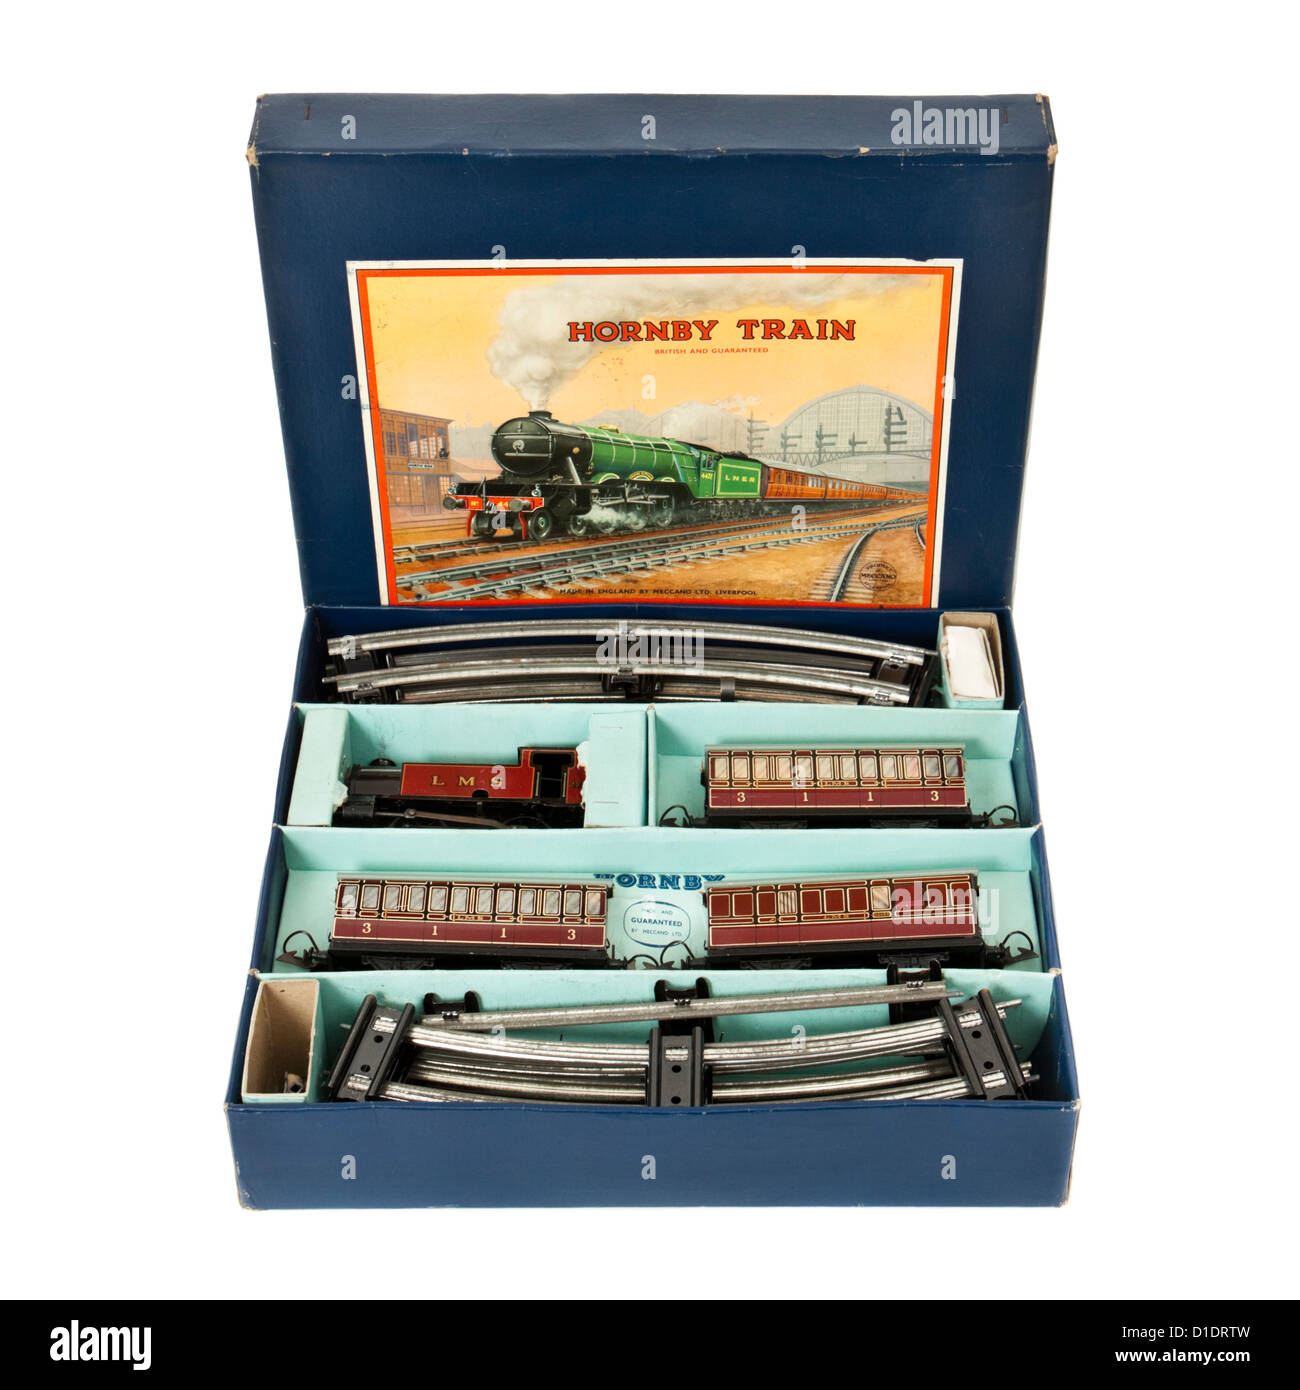 Rare 1950's Hornby (Meccano) No 101 Tank Passenger Train Set with clockwork tinplate locomotive and carriages - Stock Image